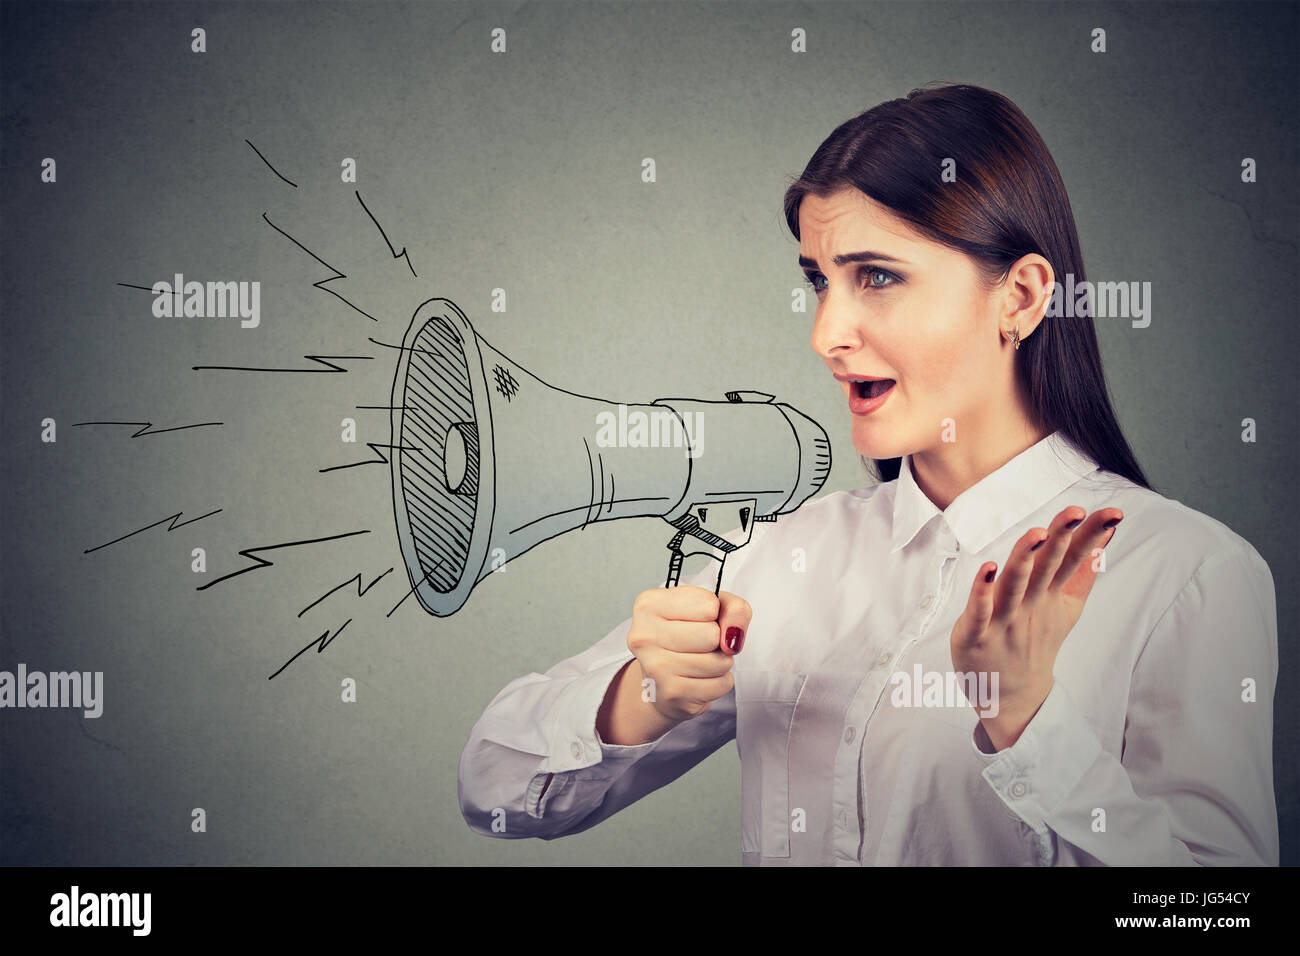 Woman making announcement with megaphone - Stock Image